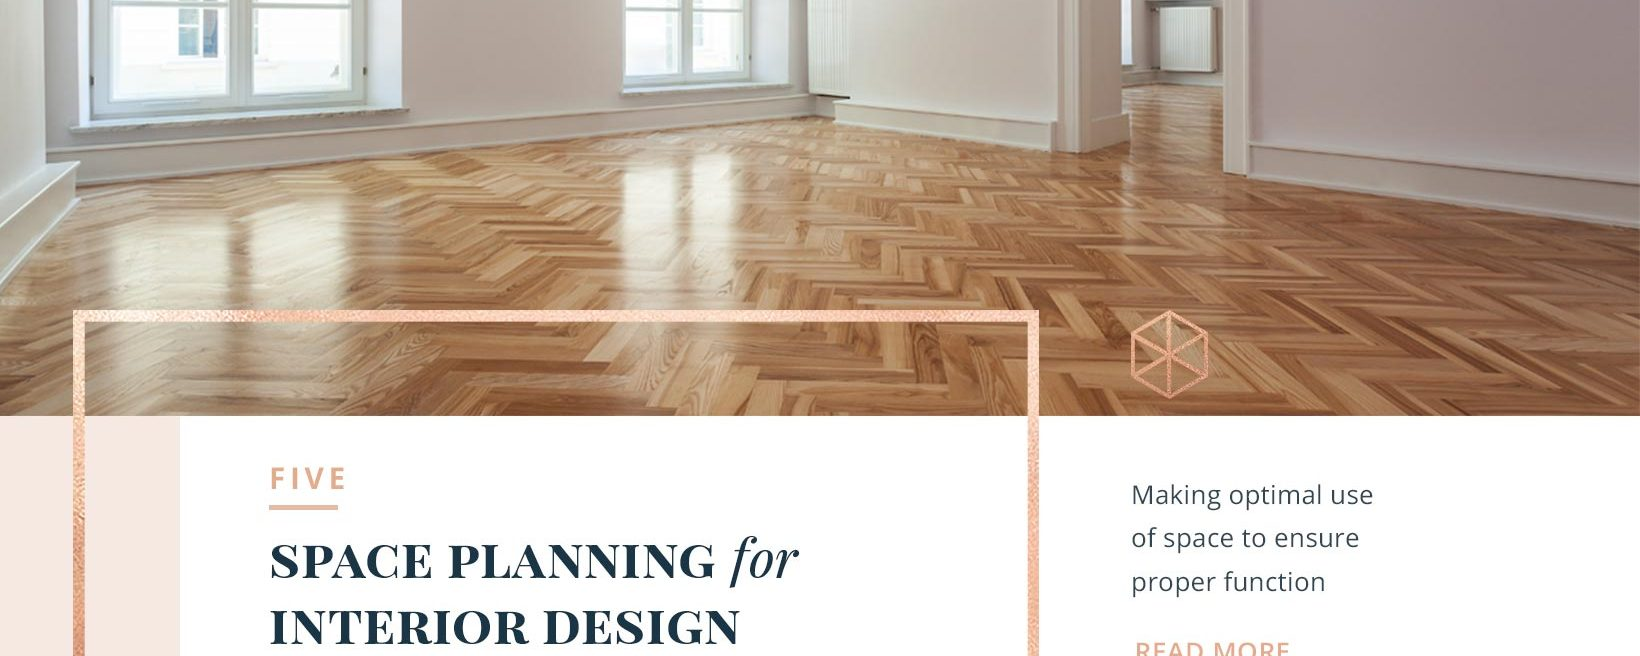 FIVE: Space Planning for Interior Design